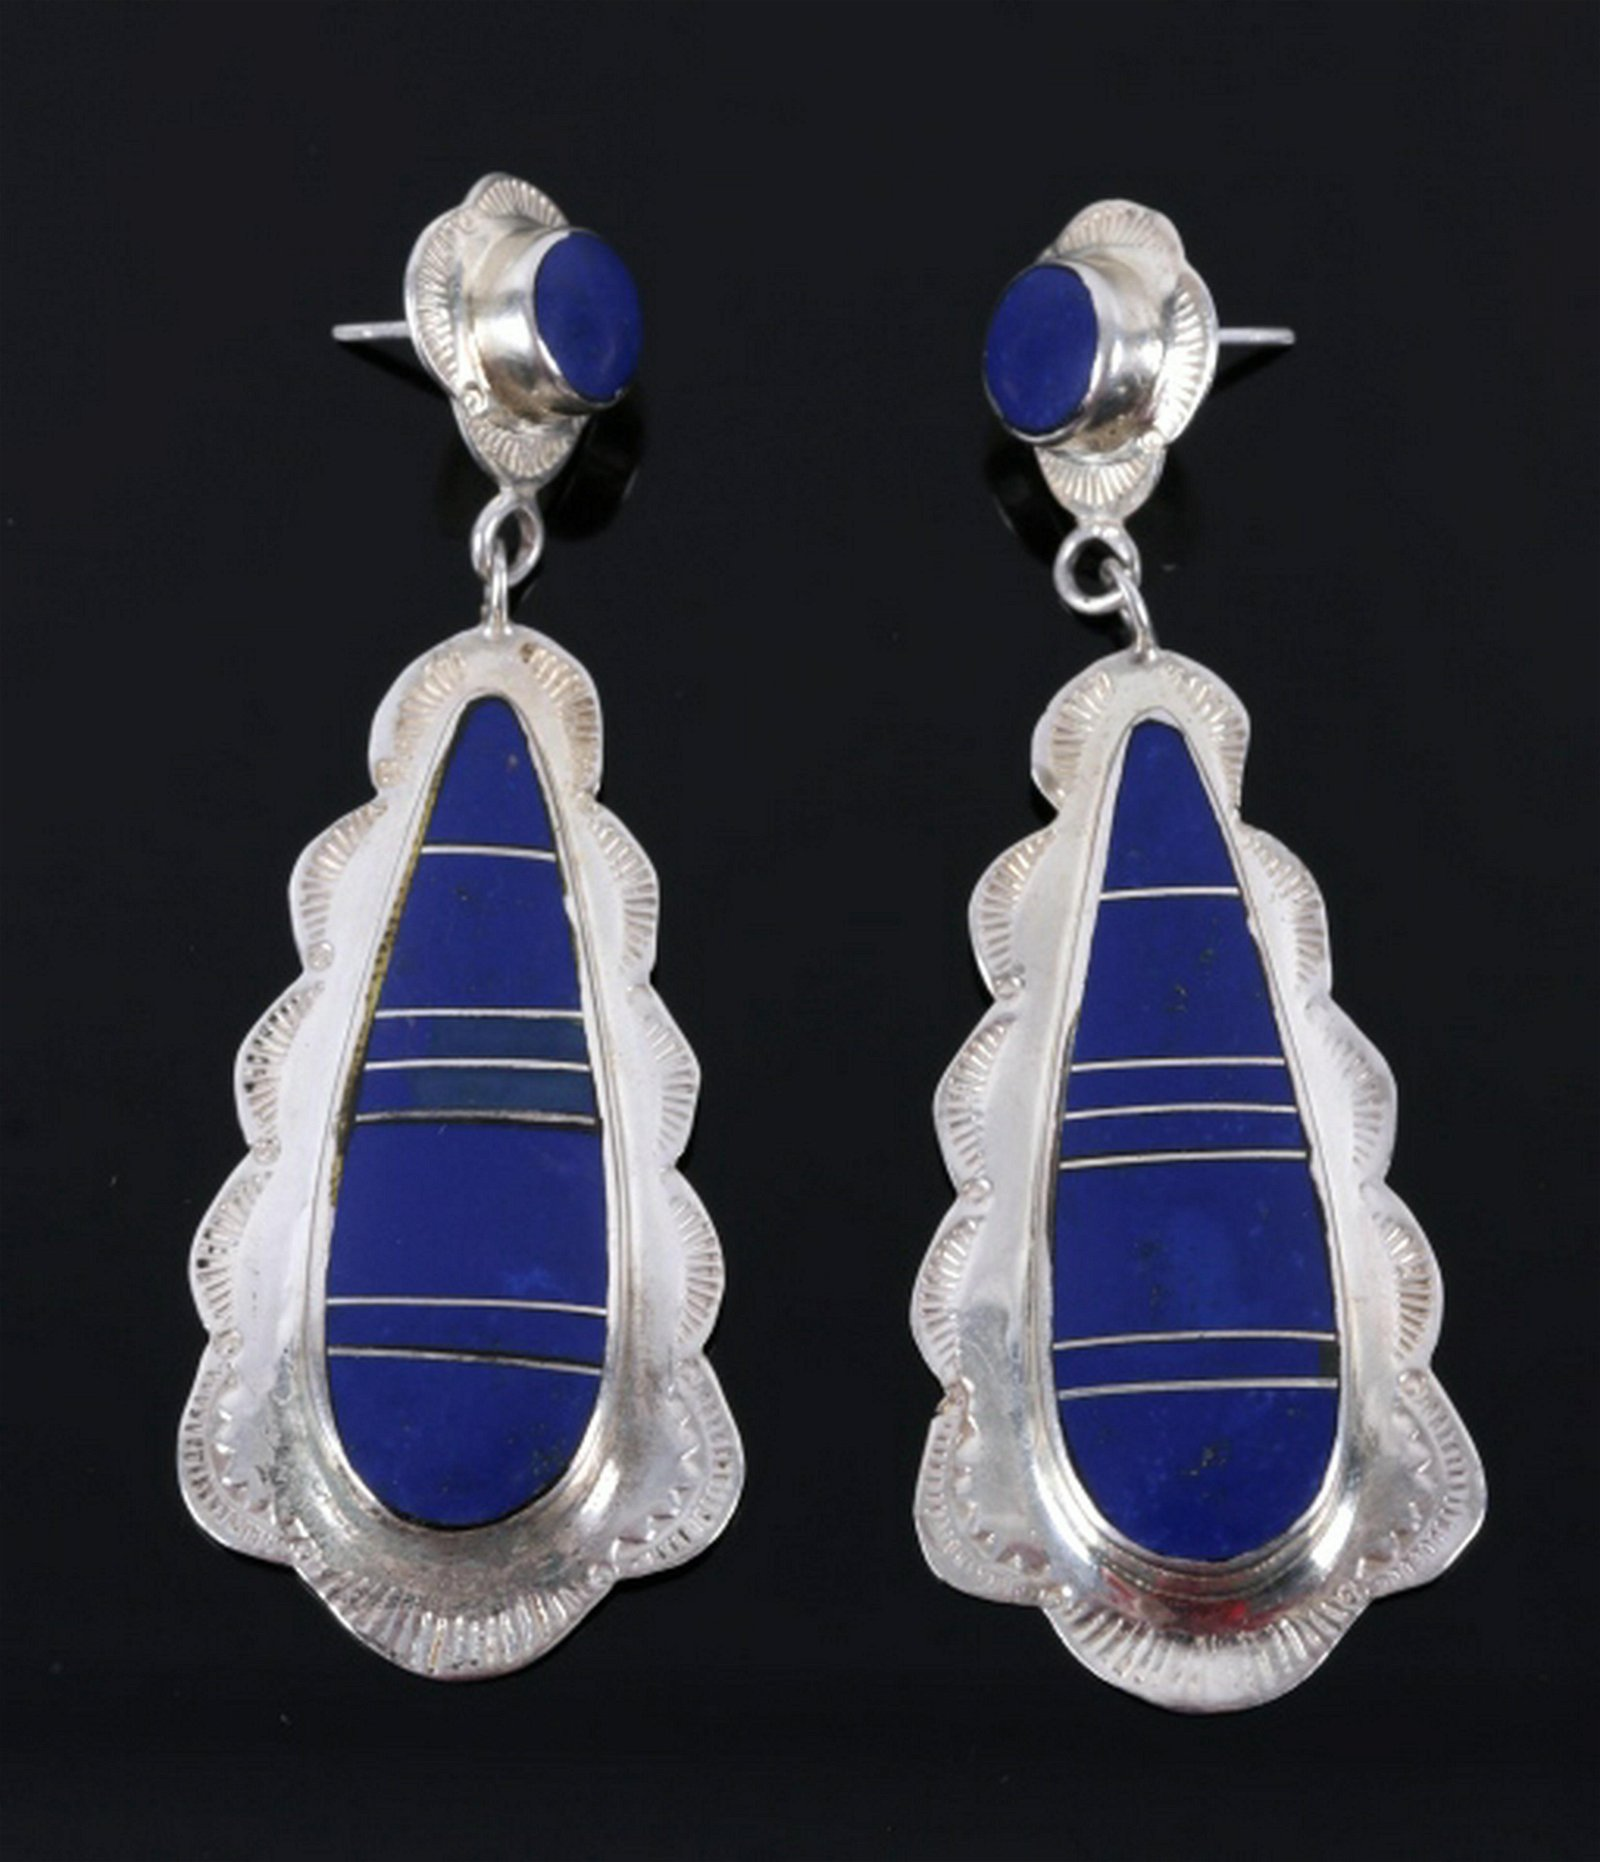 Navajo Lapis Lazuli & Sterling Silver Earrings